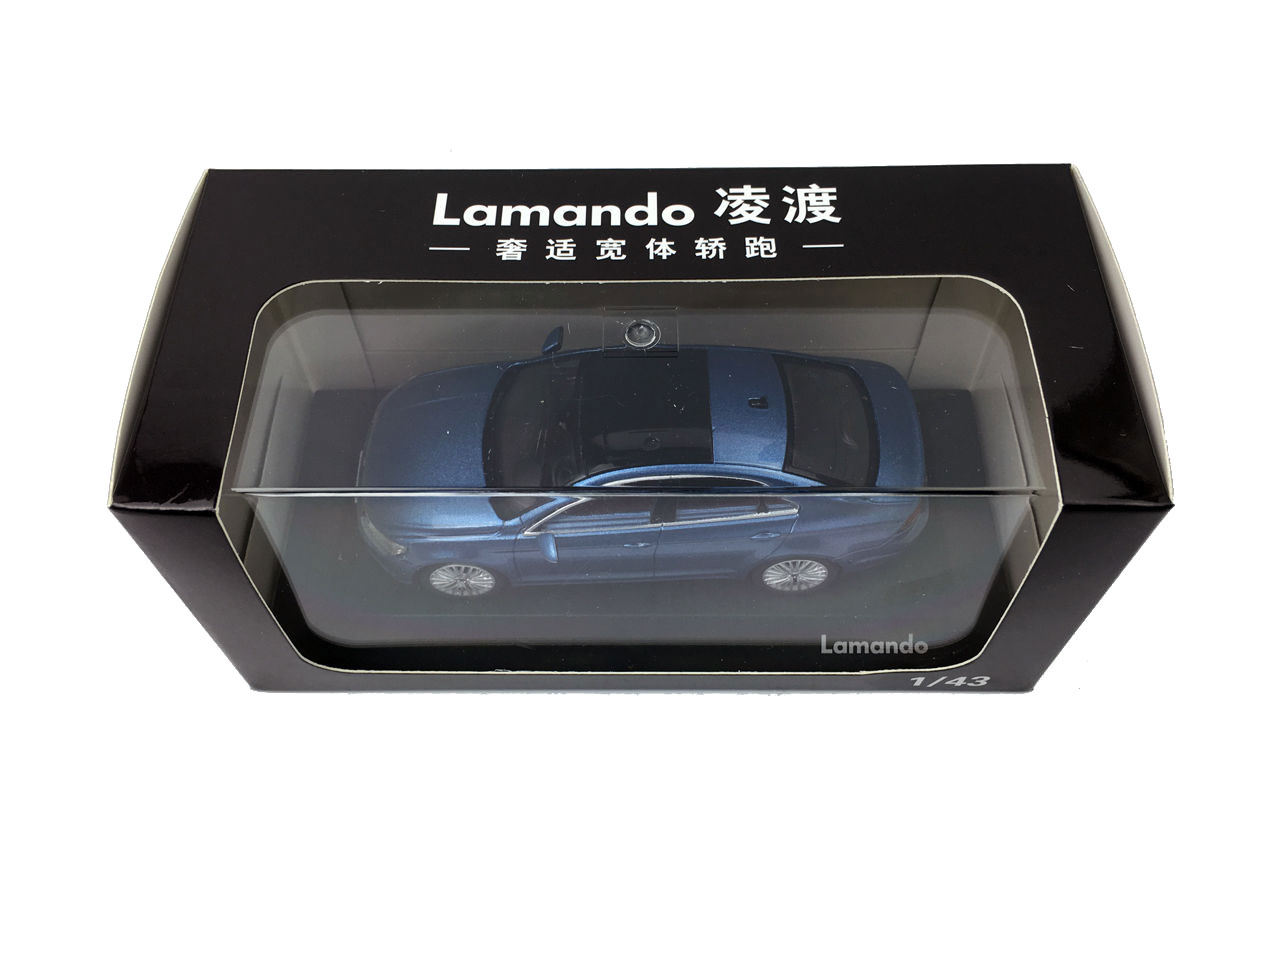 Volkswagen Lamando/Jetta CC 1/43 Scale Diecast Model Car Wholesale 5